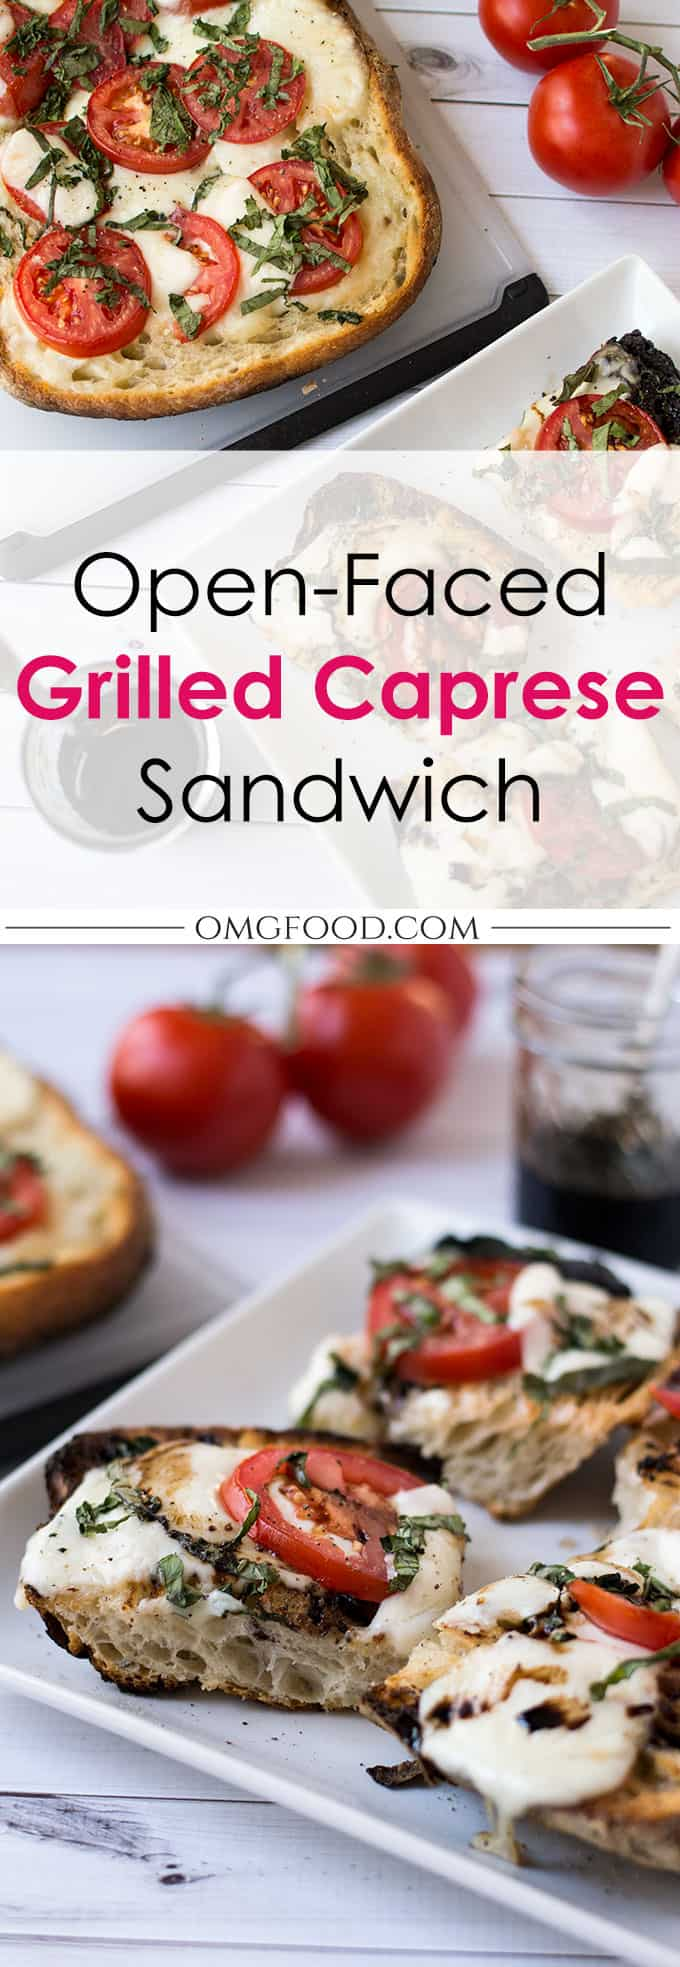 Open-Faced Grilled Caprese Sandwich - An easy, delicious summer recipe made with Stella® Fresh Mozzarella! #FreshisBest | omgfood.com